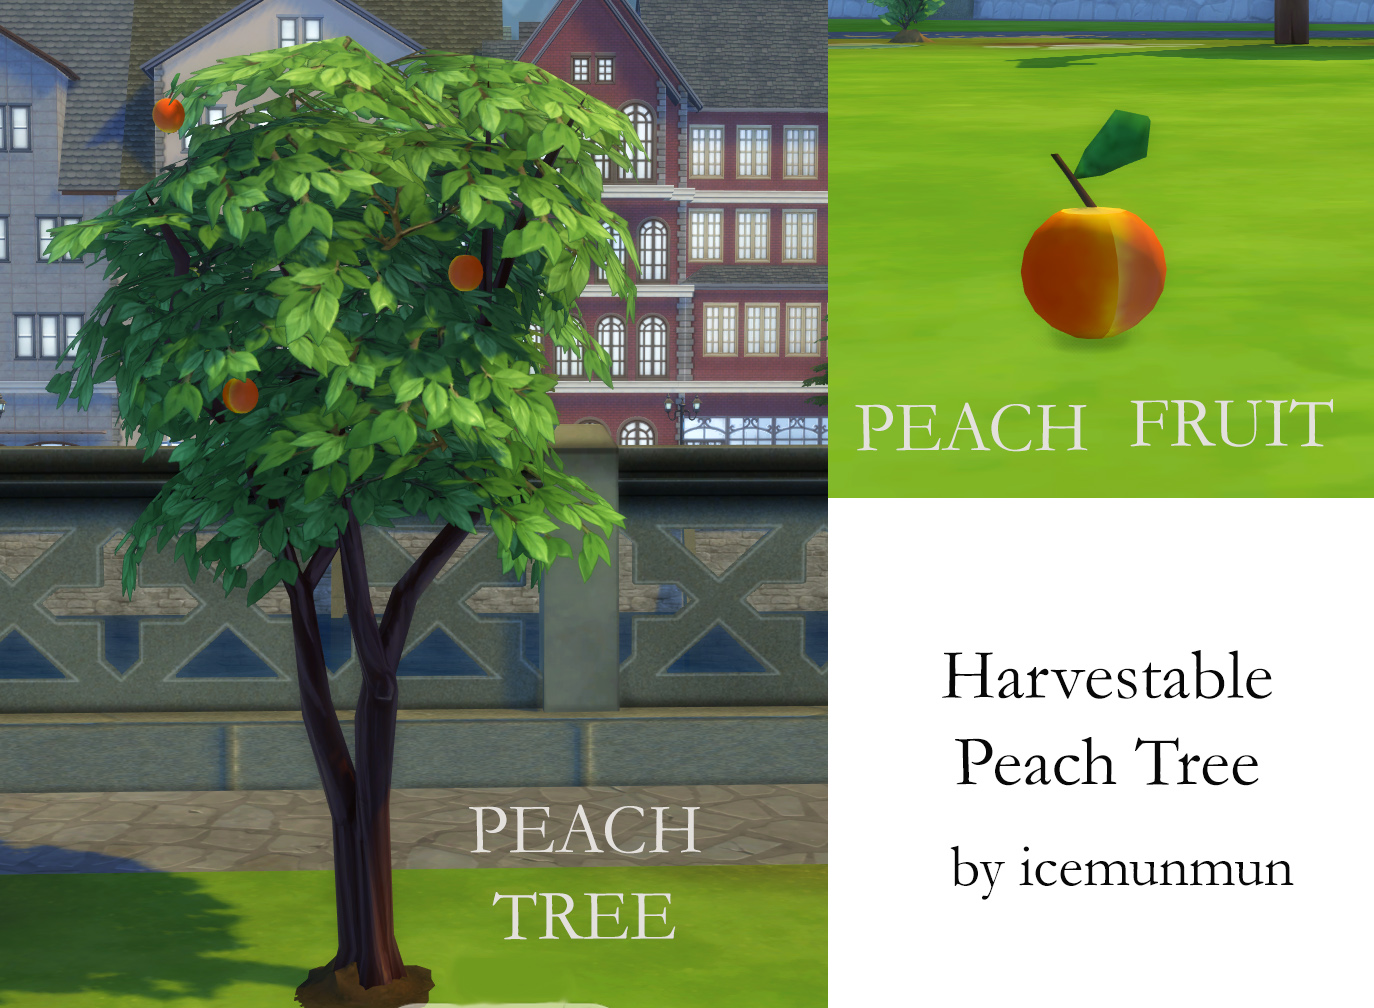 Harvestable Peach Tree by icemunmun